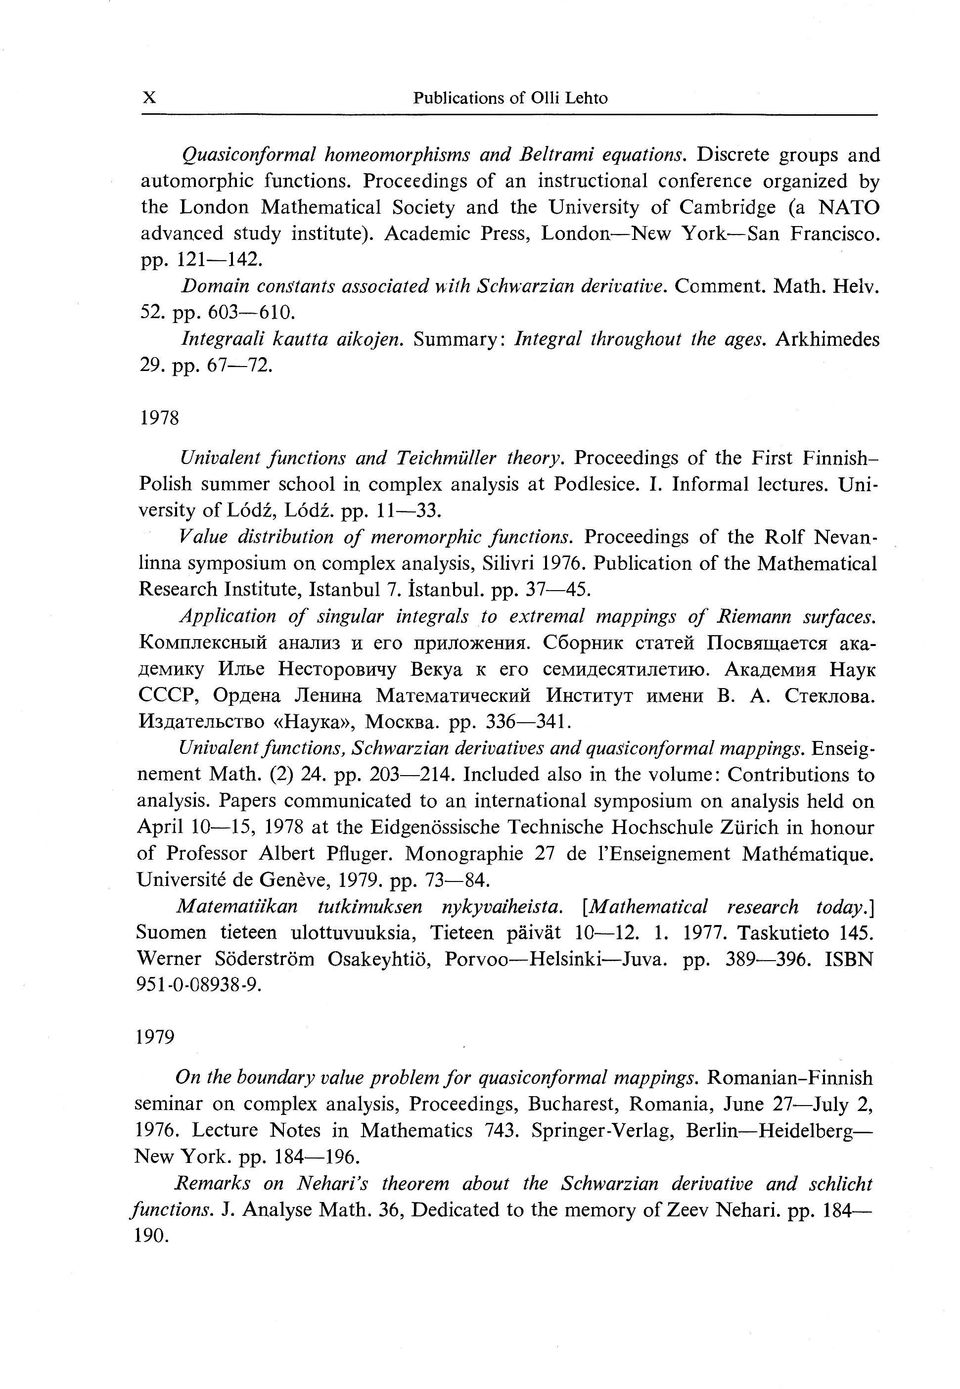 ann acad sci fenn ser a i math dissertationes Ifs proc amer math soc, 131(12):3695–3702, 2003 [9] y g reshetnyak stability theorems in geometry and analysis kluwer academic pub- lishers group, dordrecht, 1994 [10] a salli upper density properties of hausdorff measures on fractals ann acad sci fenn ser a i math dissertationes no.